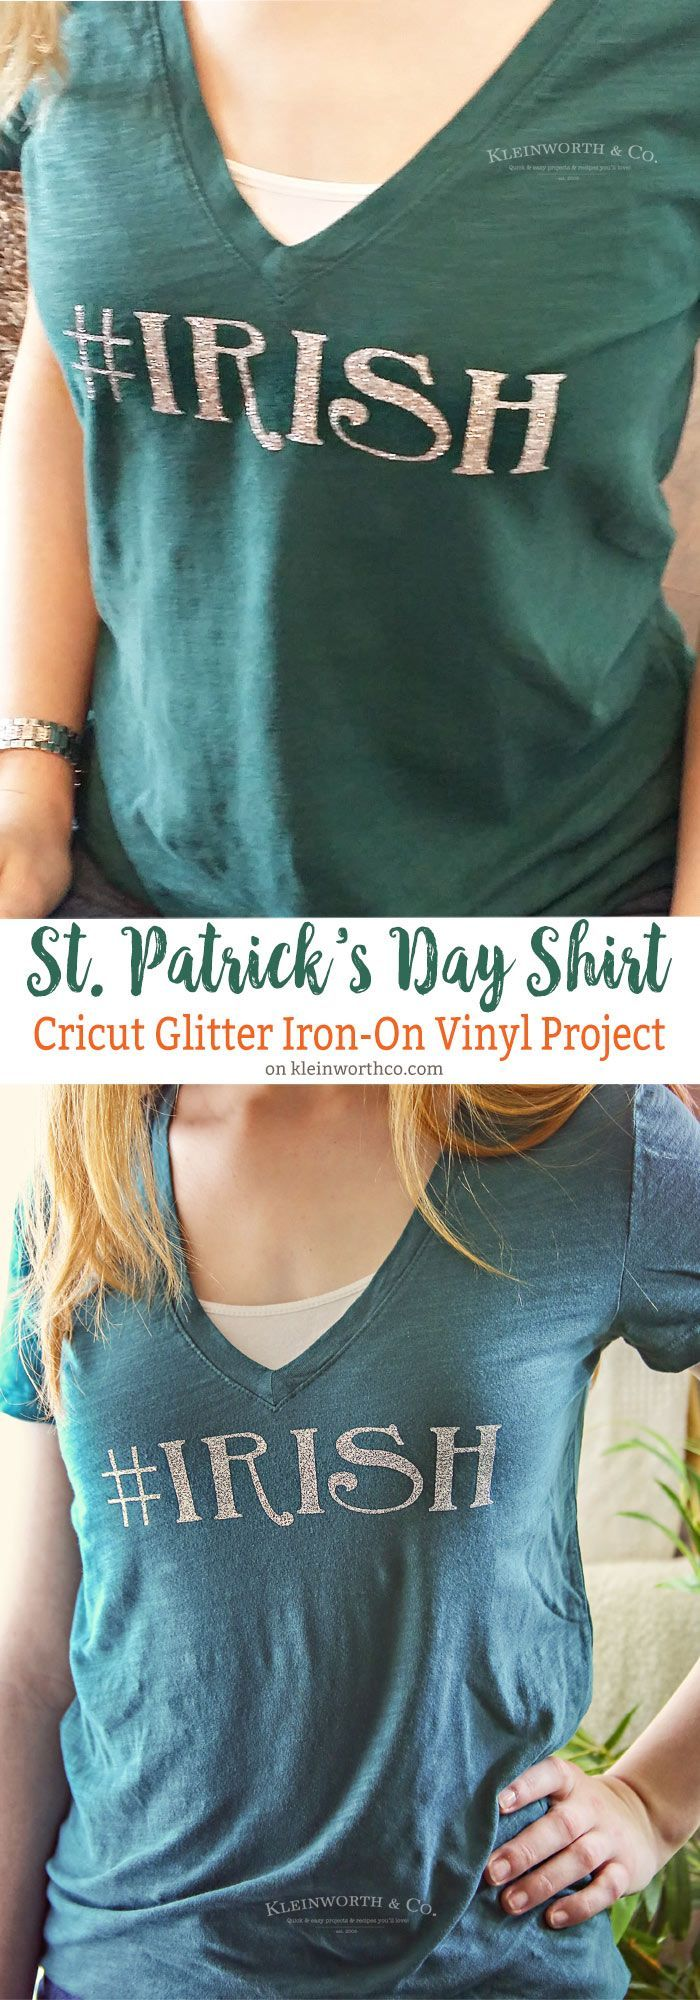 Hashtag Irish St. Patrick's Day Shirt is a super fun way to celebrate all things Irish! Super easy tutorial with glitter iron-on vinyl.AD #cricutmade @Official Cricut